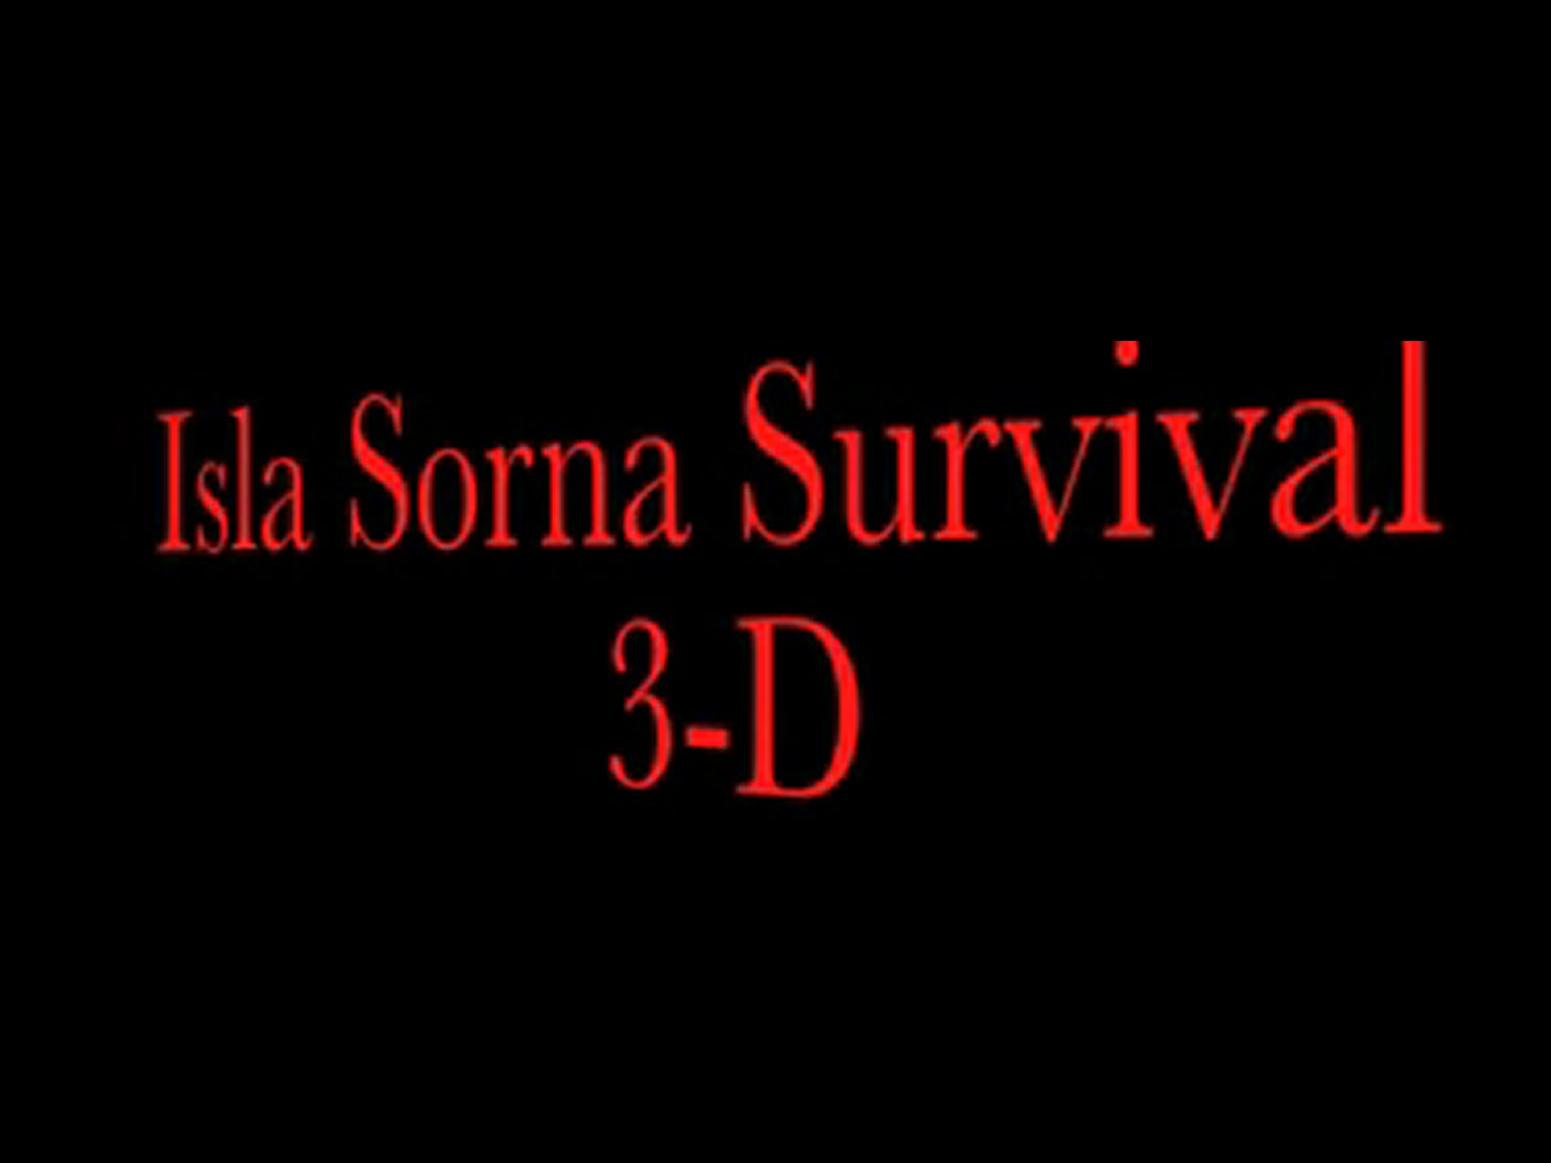 Isla Sorna Survival 3-D Trailer